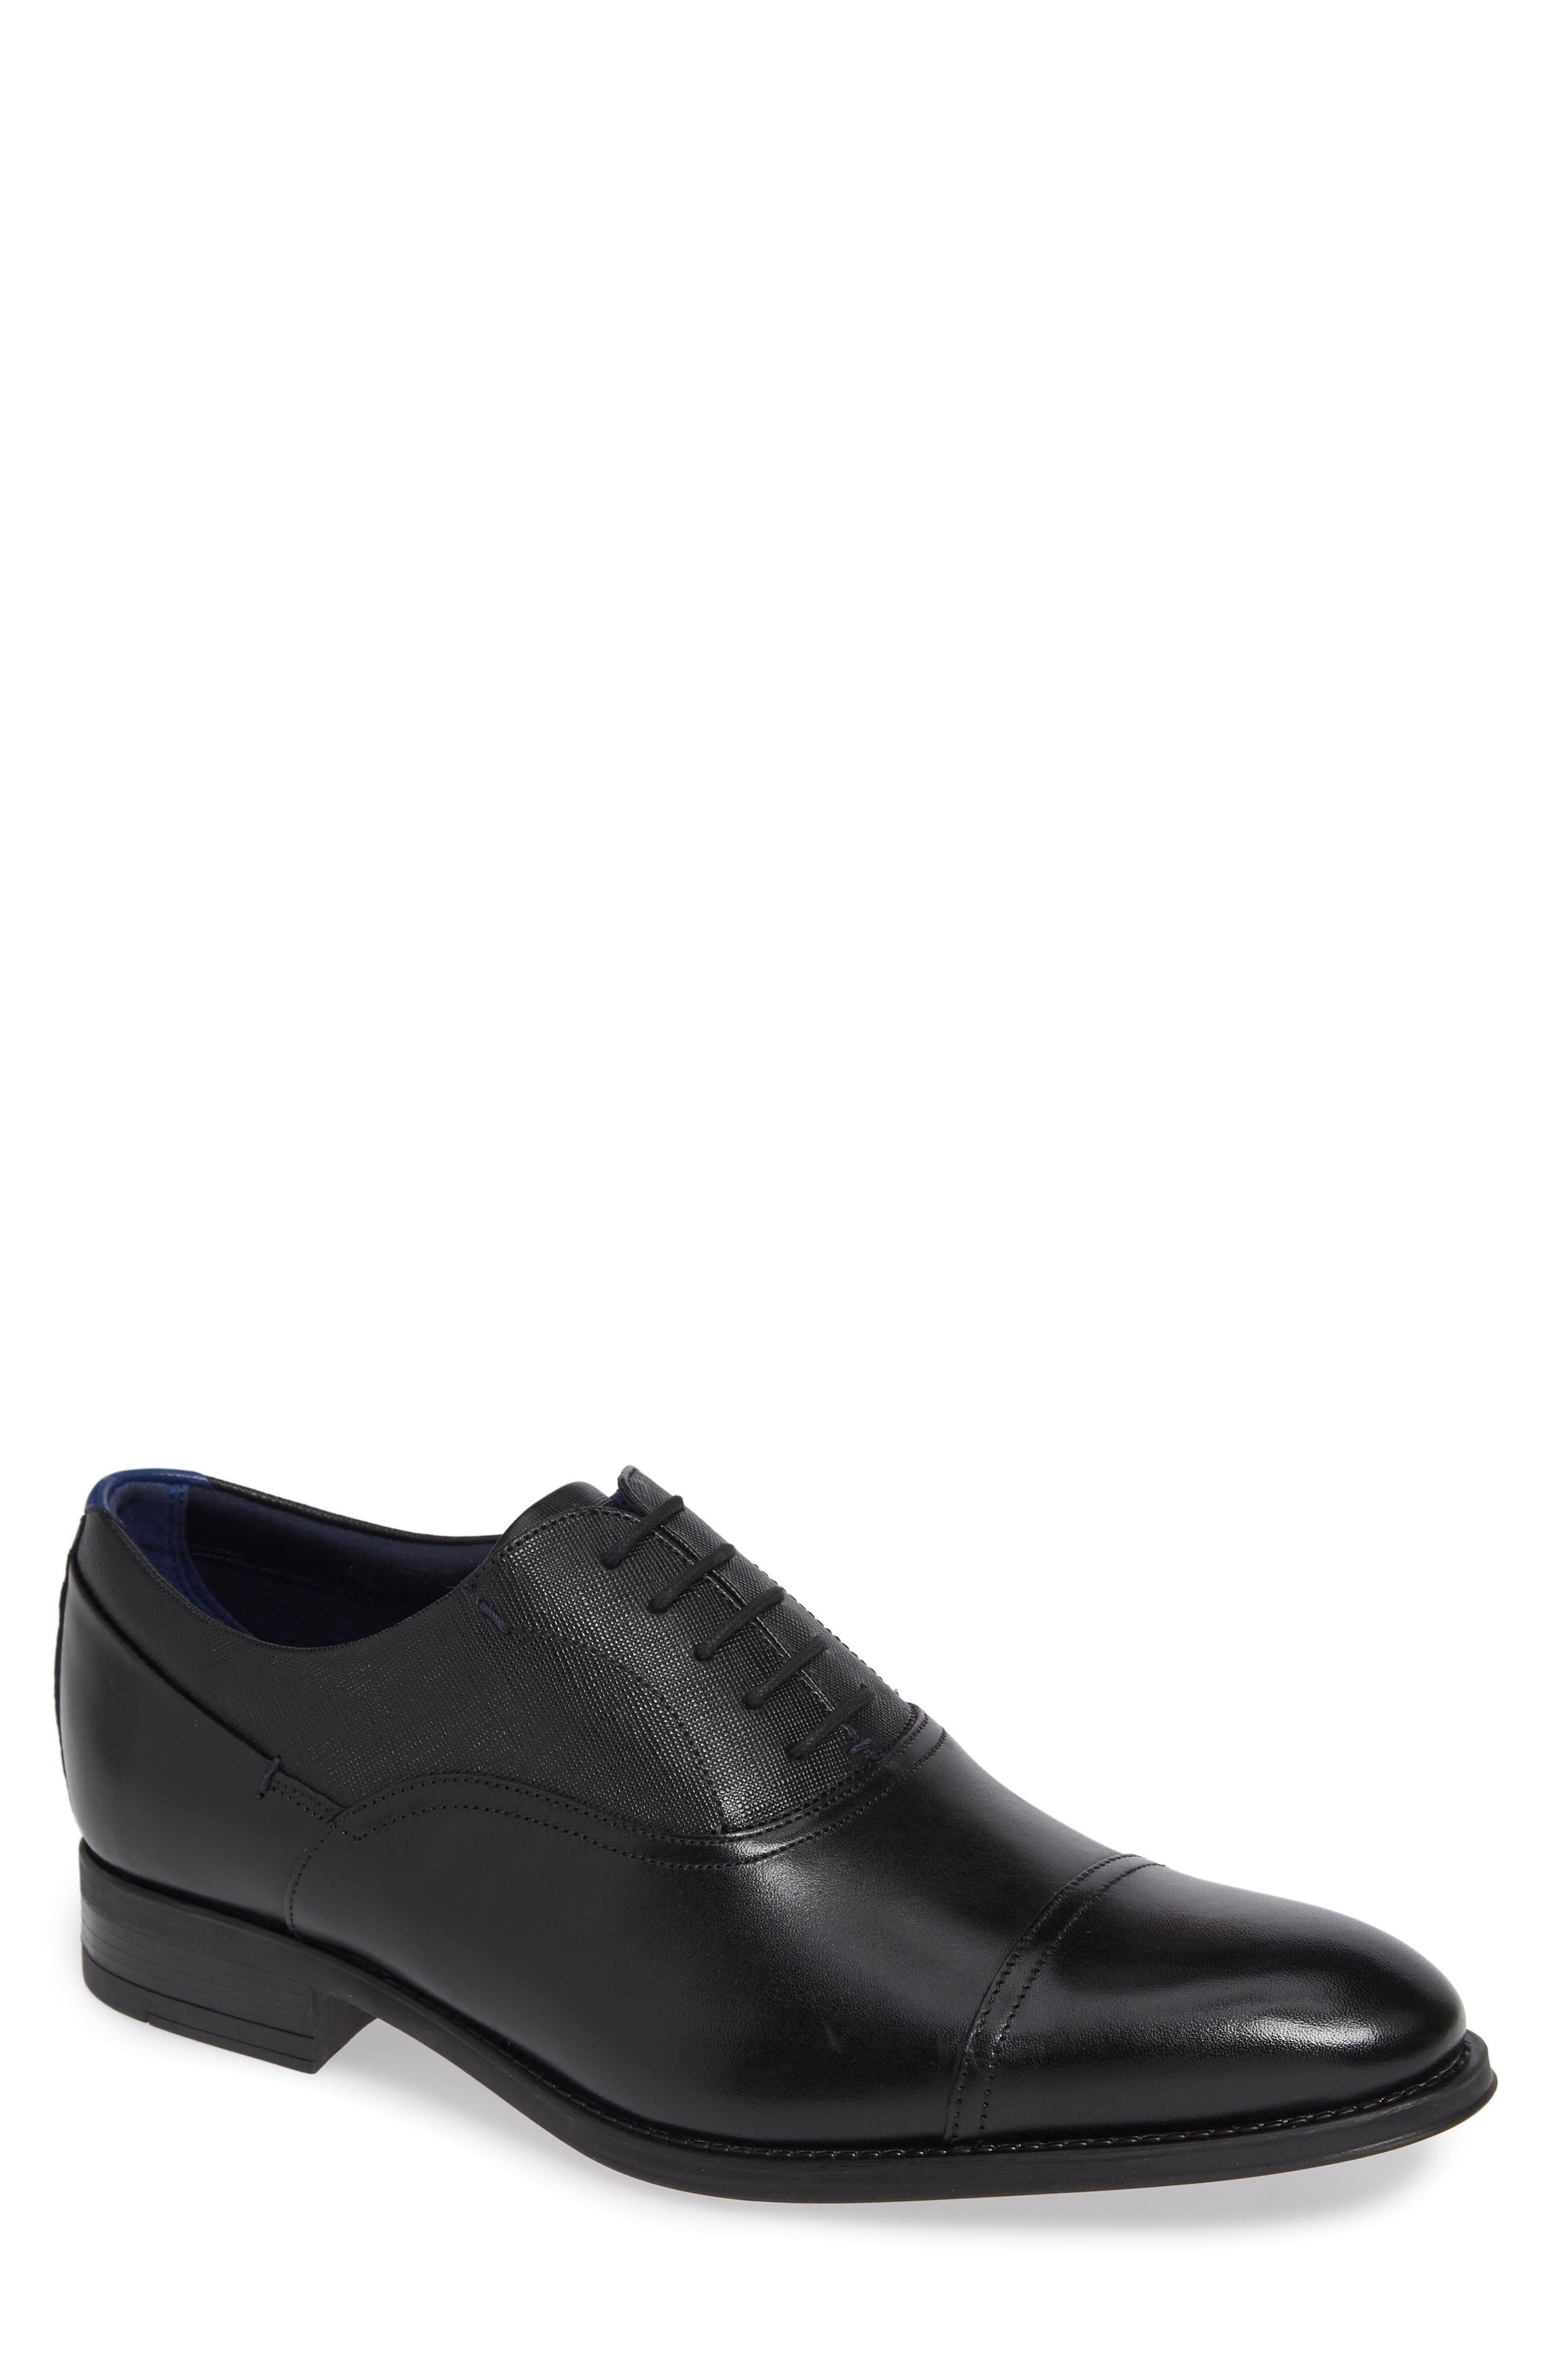 Fhares Cap Toe Oxford,                             Main thumbnail 1, color,                             BLACK